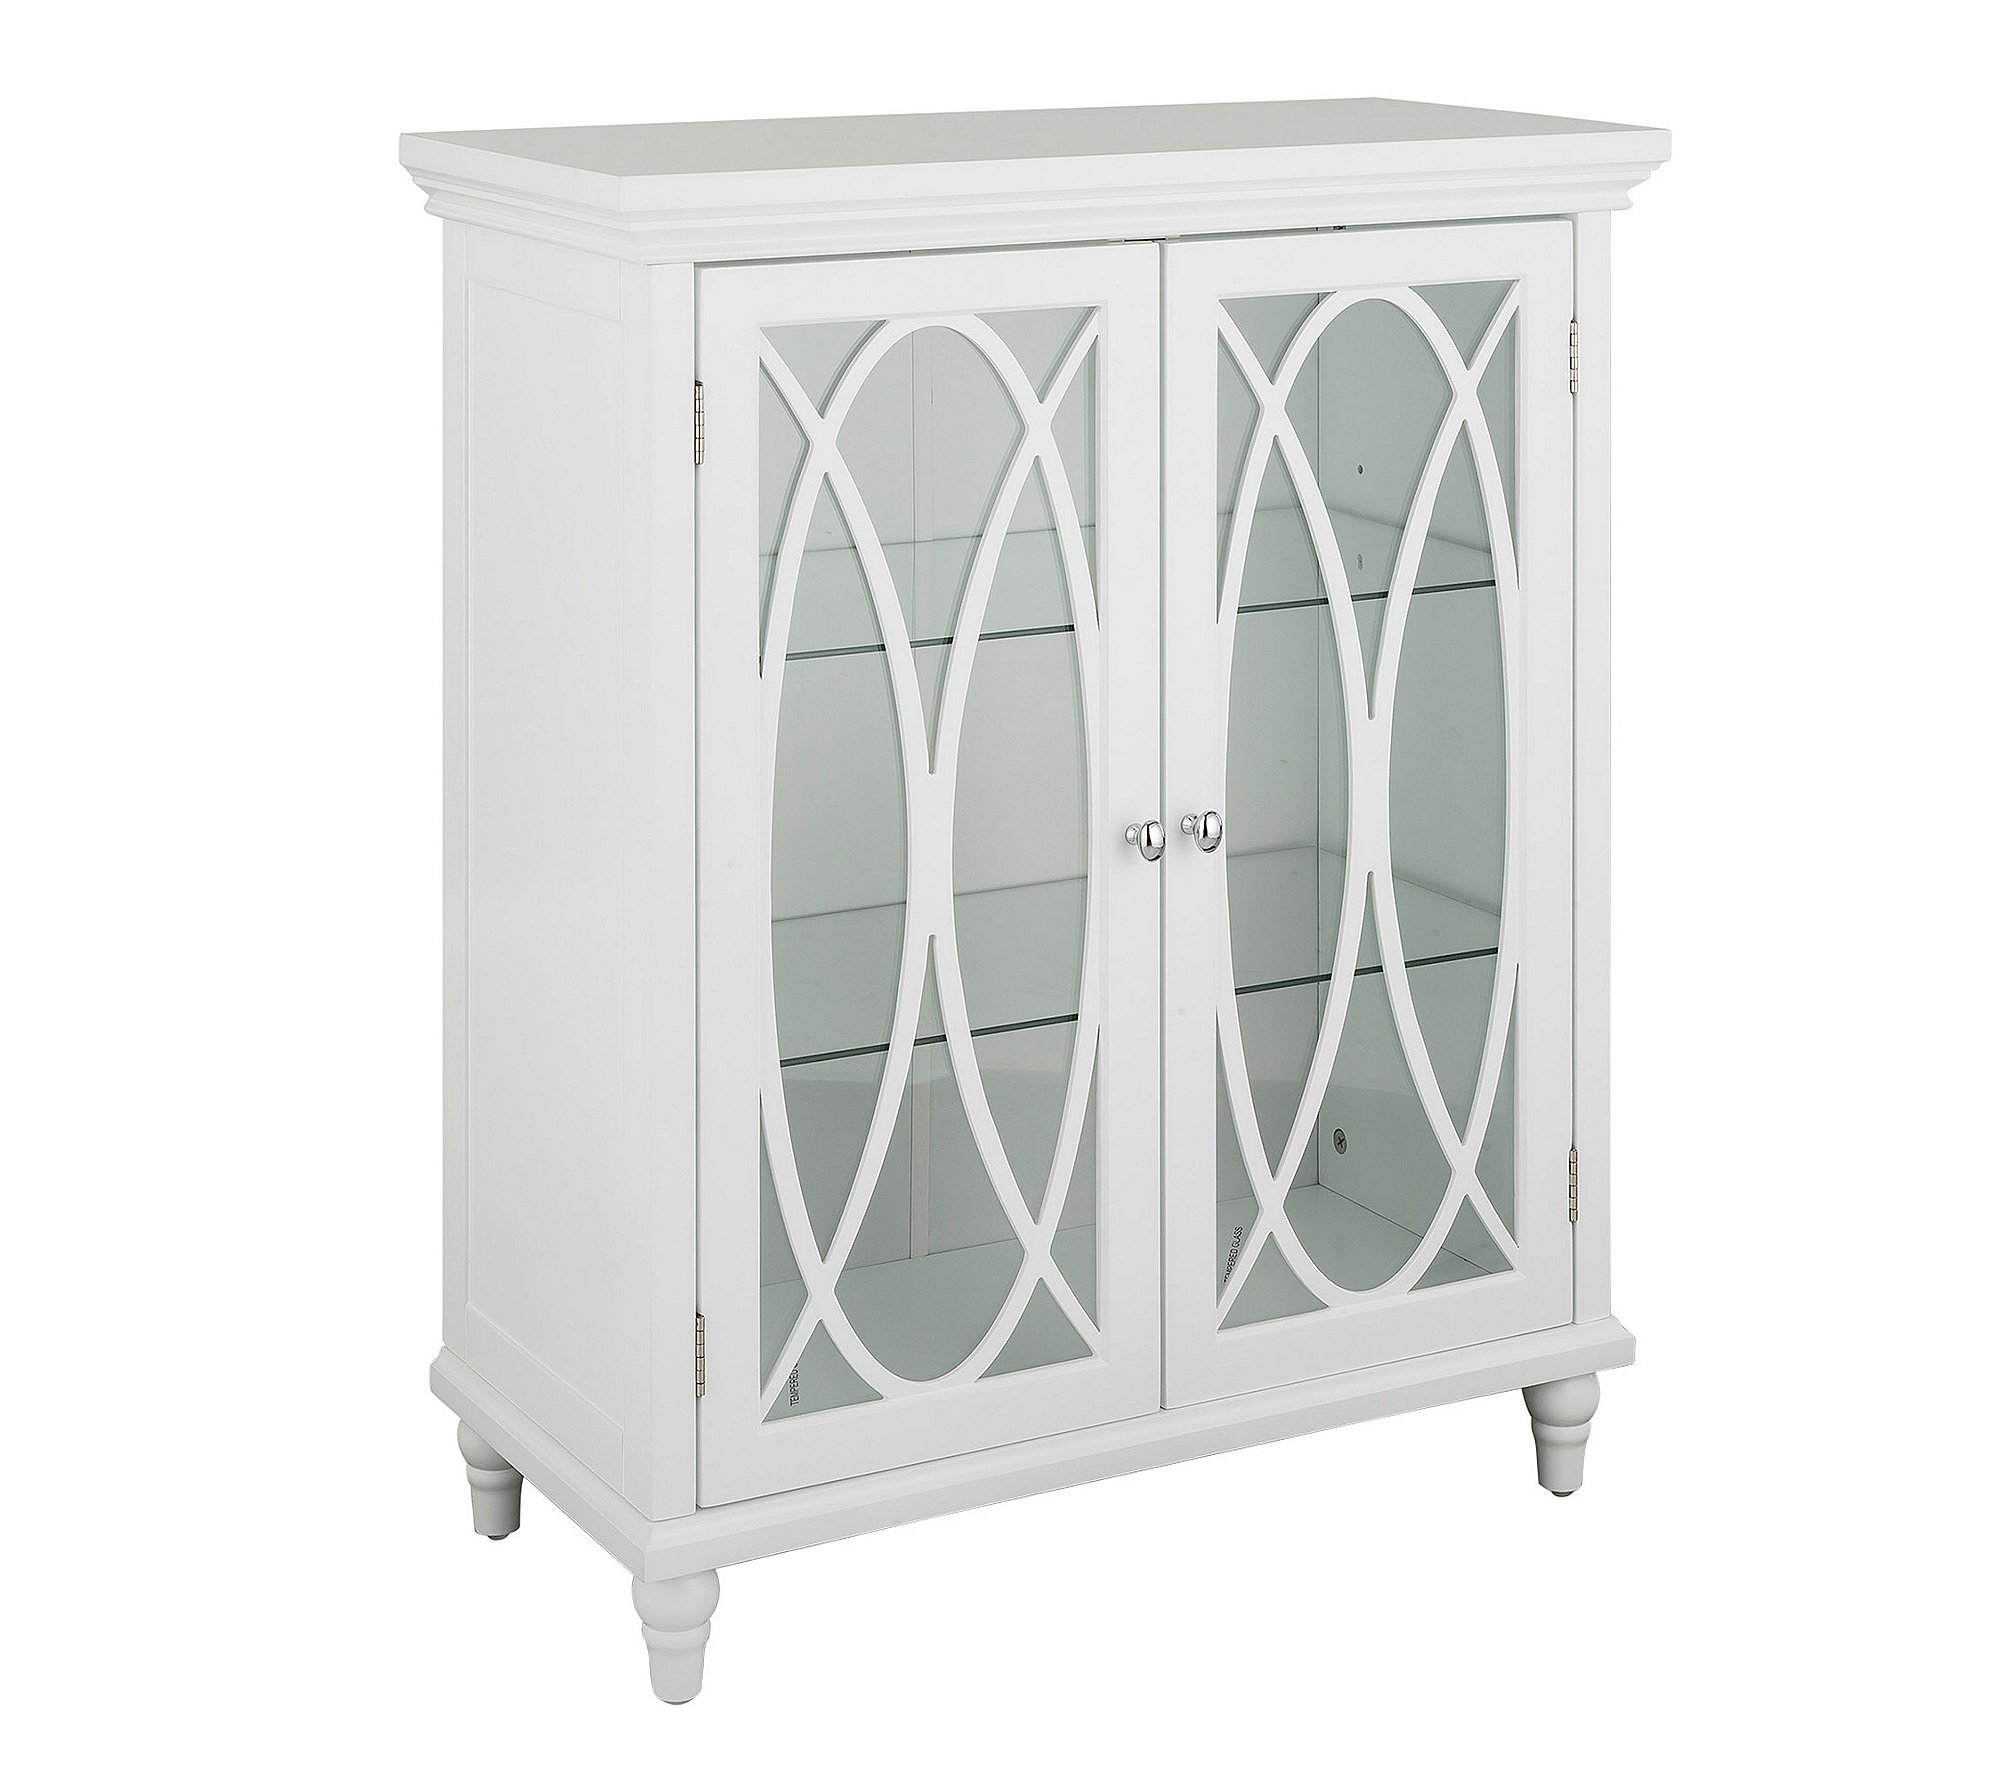 Elegant Home Fashions Florence 2 Door Floor Cabinet in White